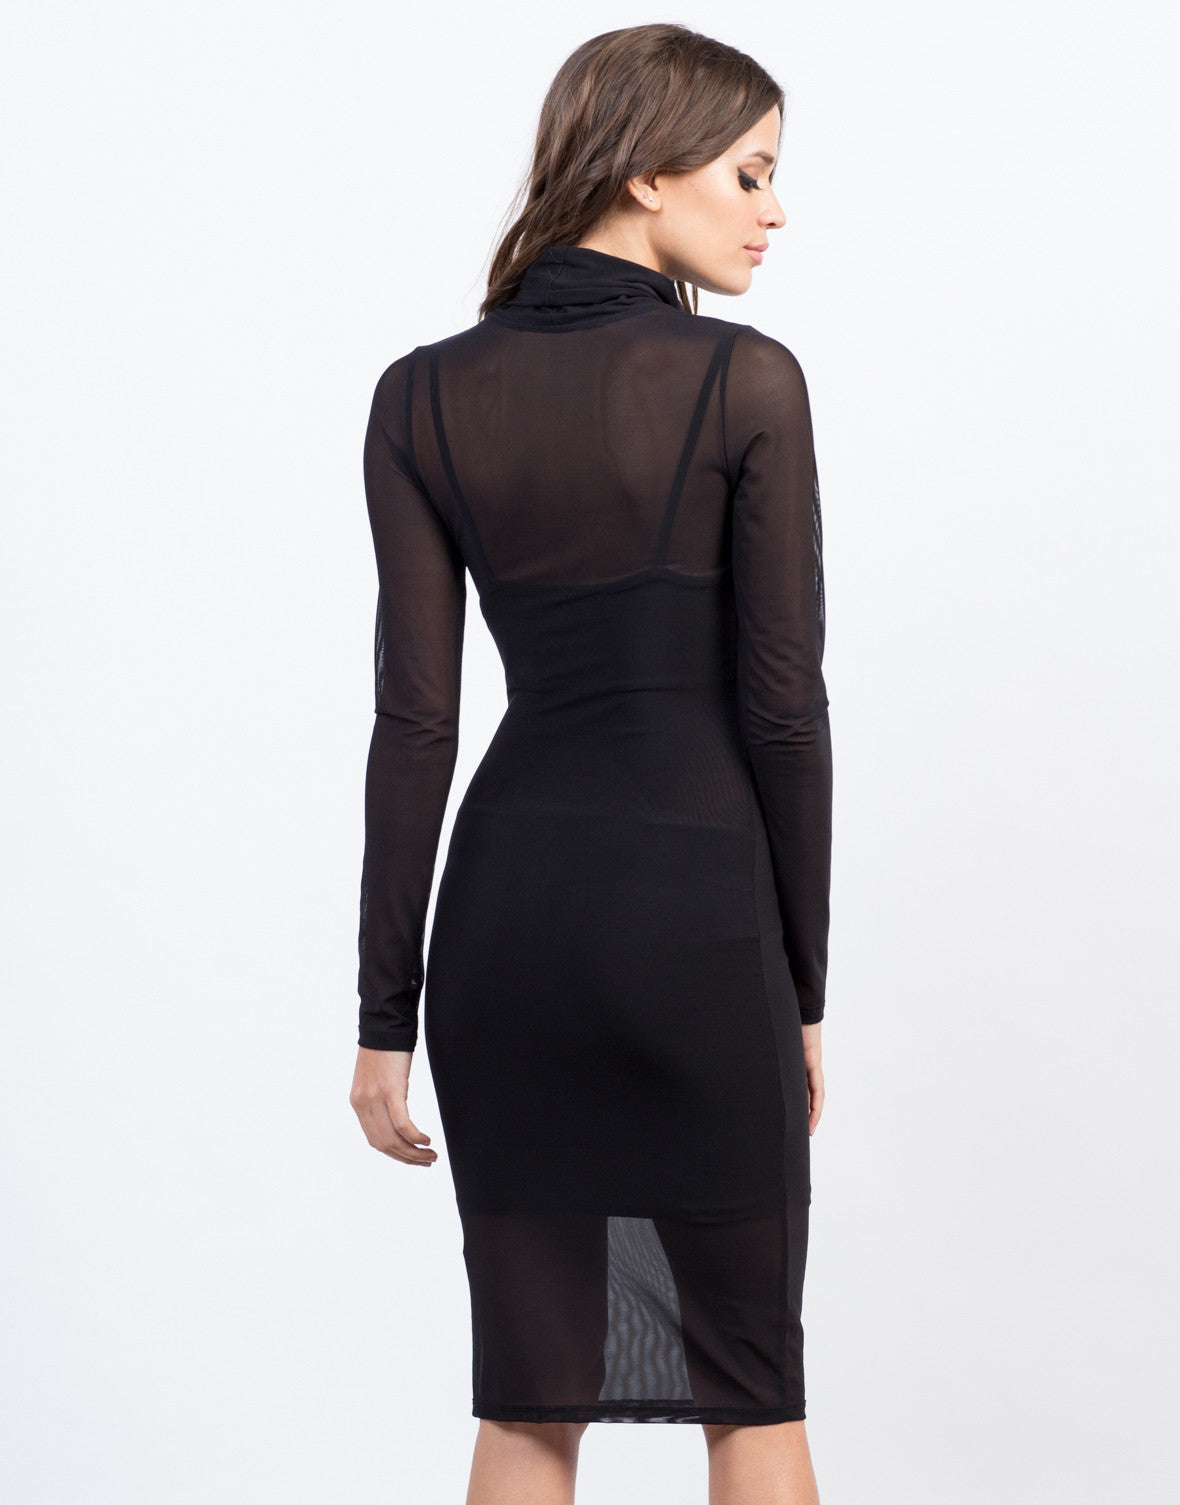 Back View of Cowl Neck Mesh Dress